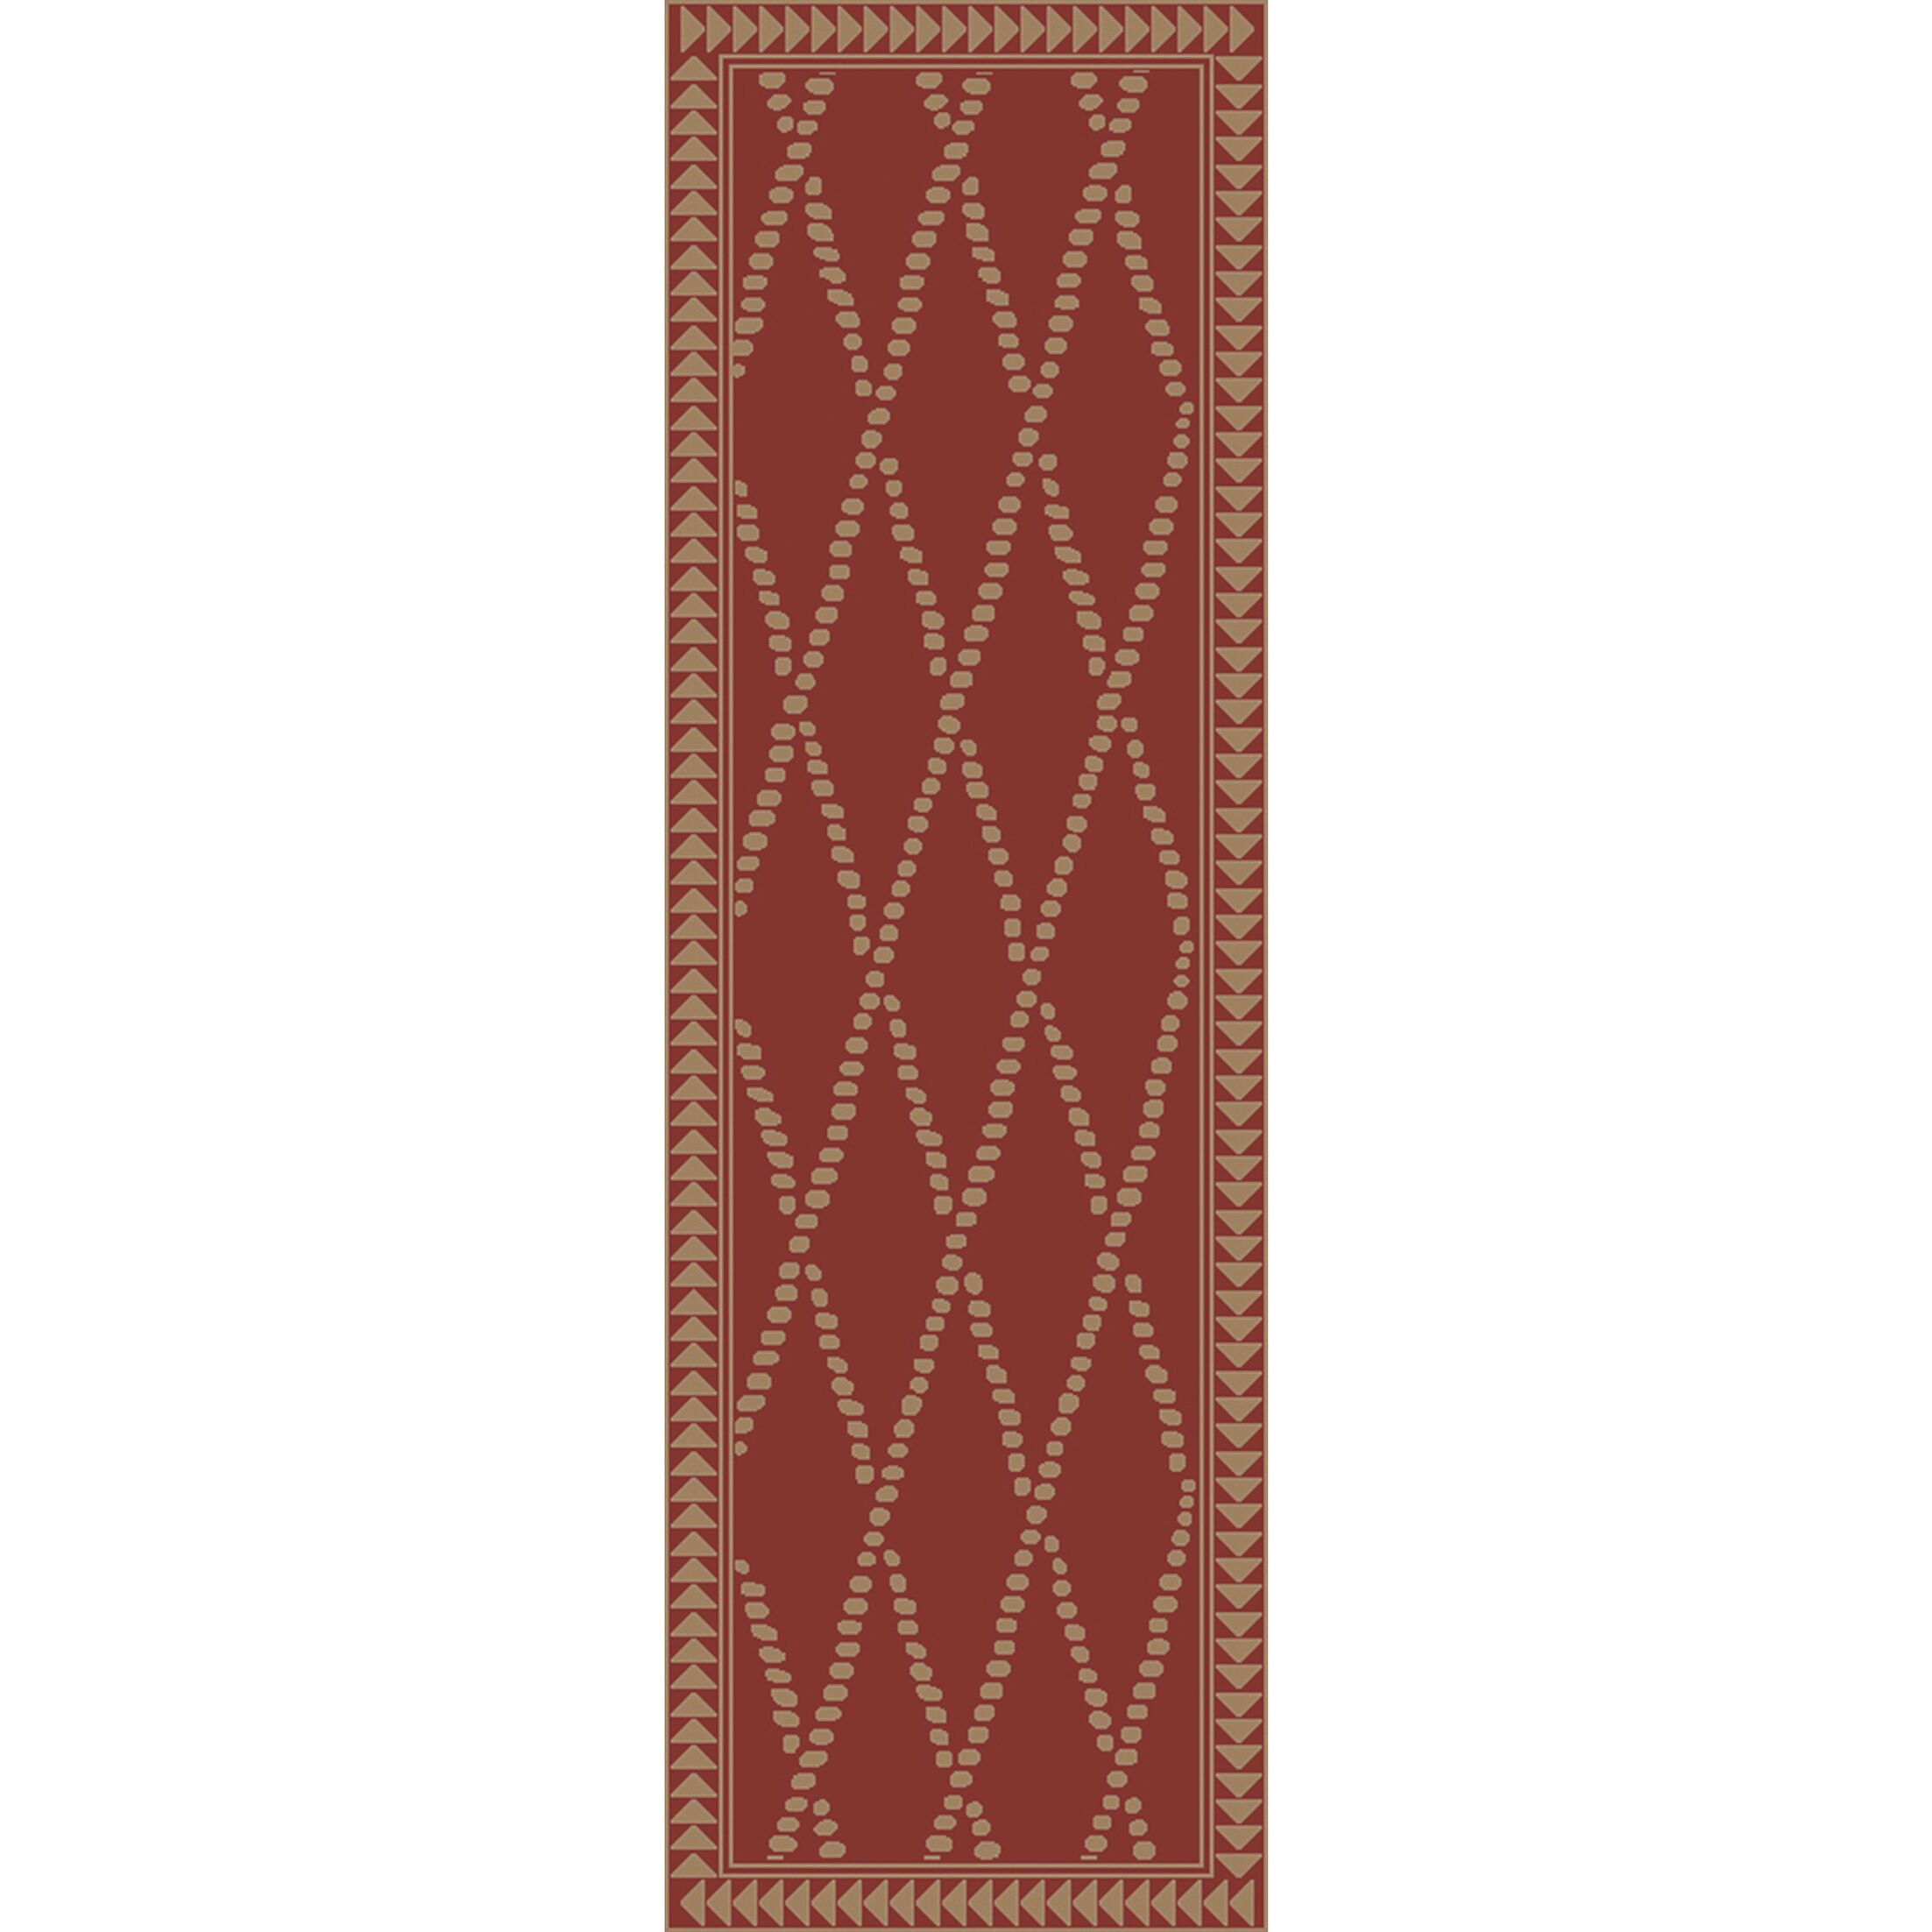 Elvera Hand-Knotted Red/Neutral Area Rug Rug Size: Runner 2'6